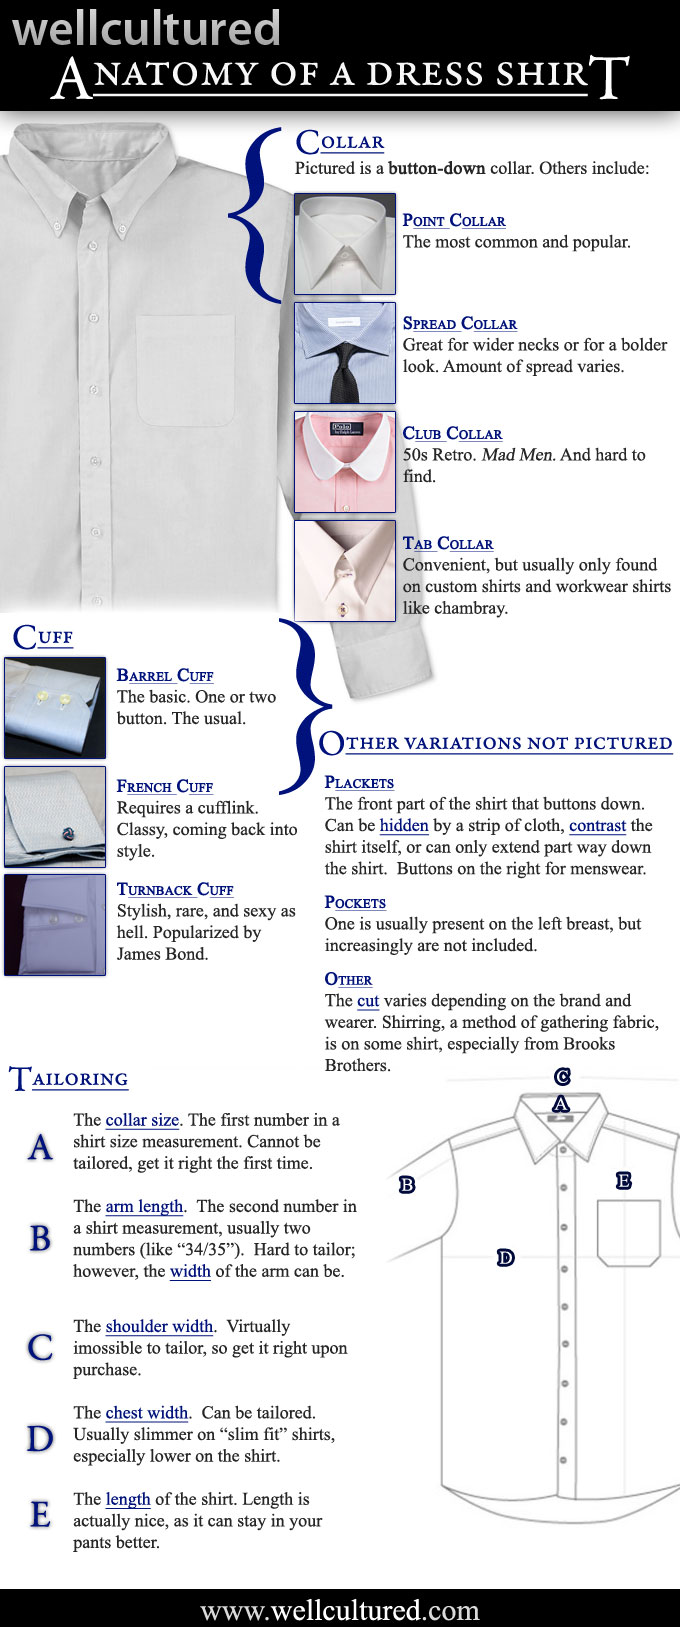 Anatomy of a Dress Shirt -- Collar, Cuff, Placket, and Tailoring Information